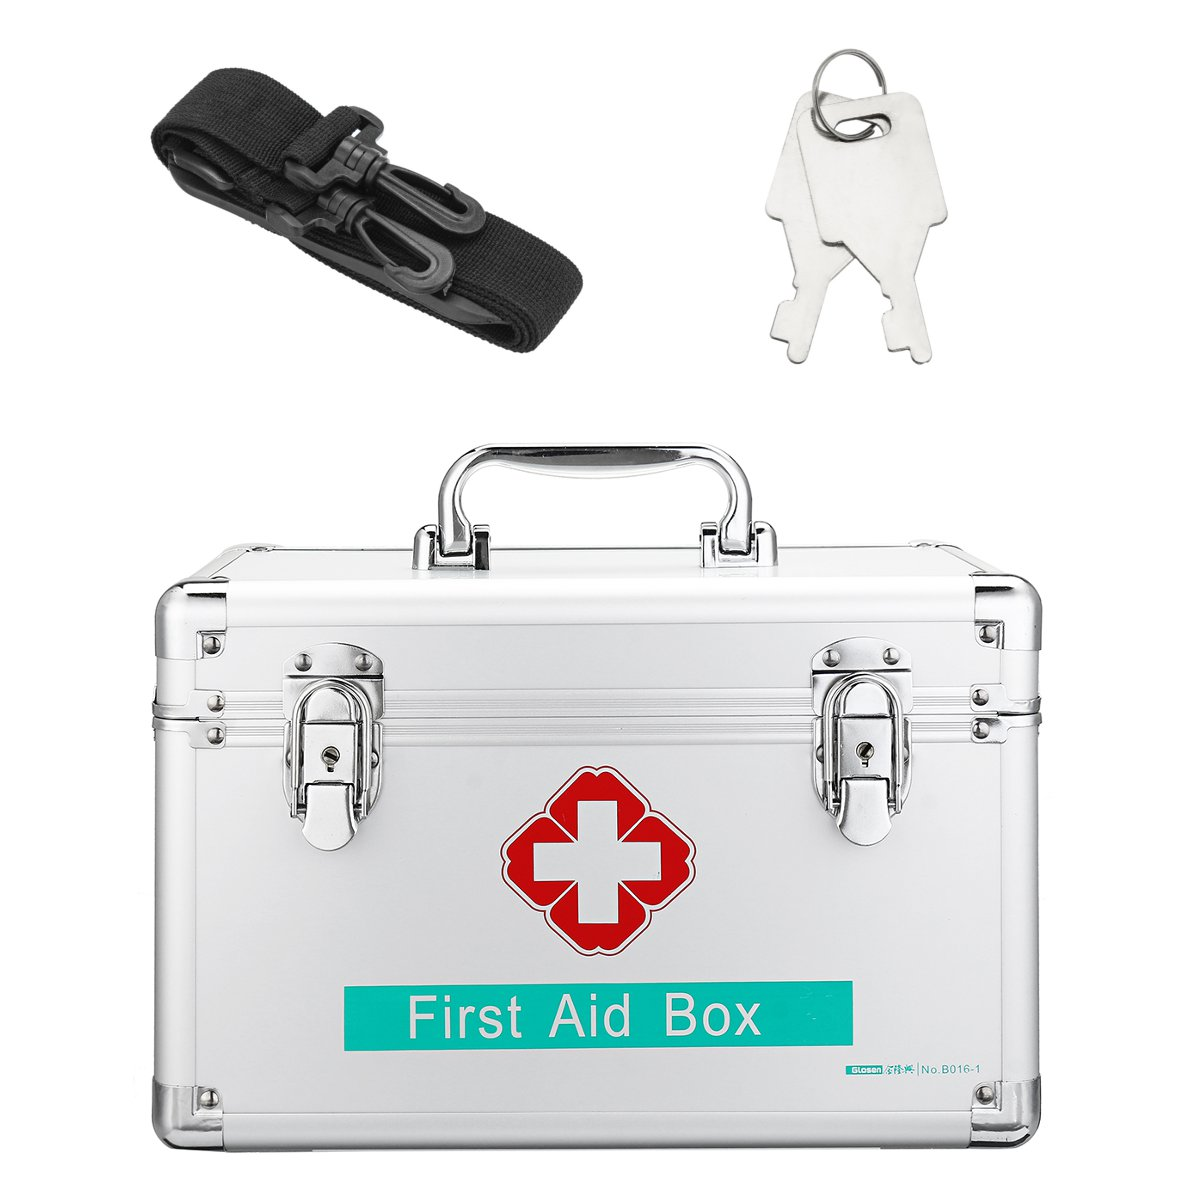 Lockable First Aid Case Durable Aluminum Frame Medicine Storage Container Box For Home Travel Workplace Household Medical 12Inch